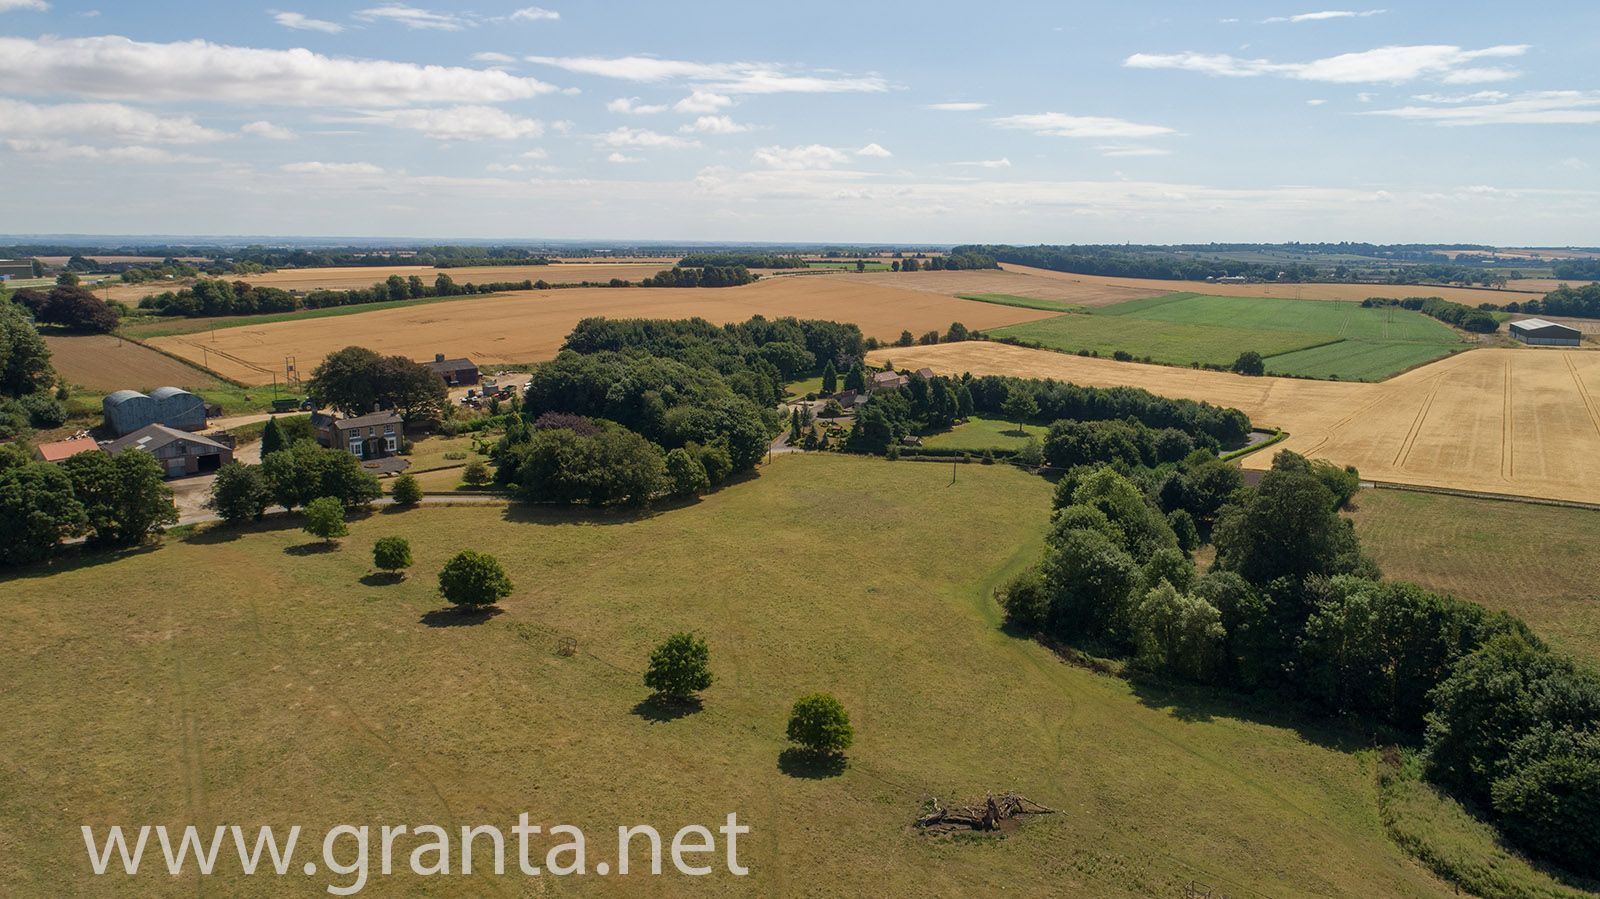 Drone aerial photo of archaeological site near Harpswell in North Lincs